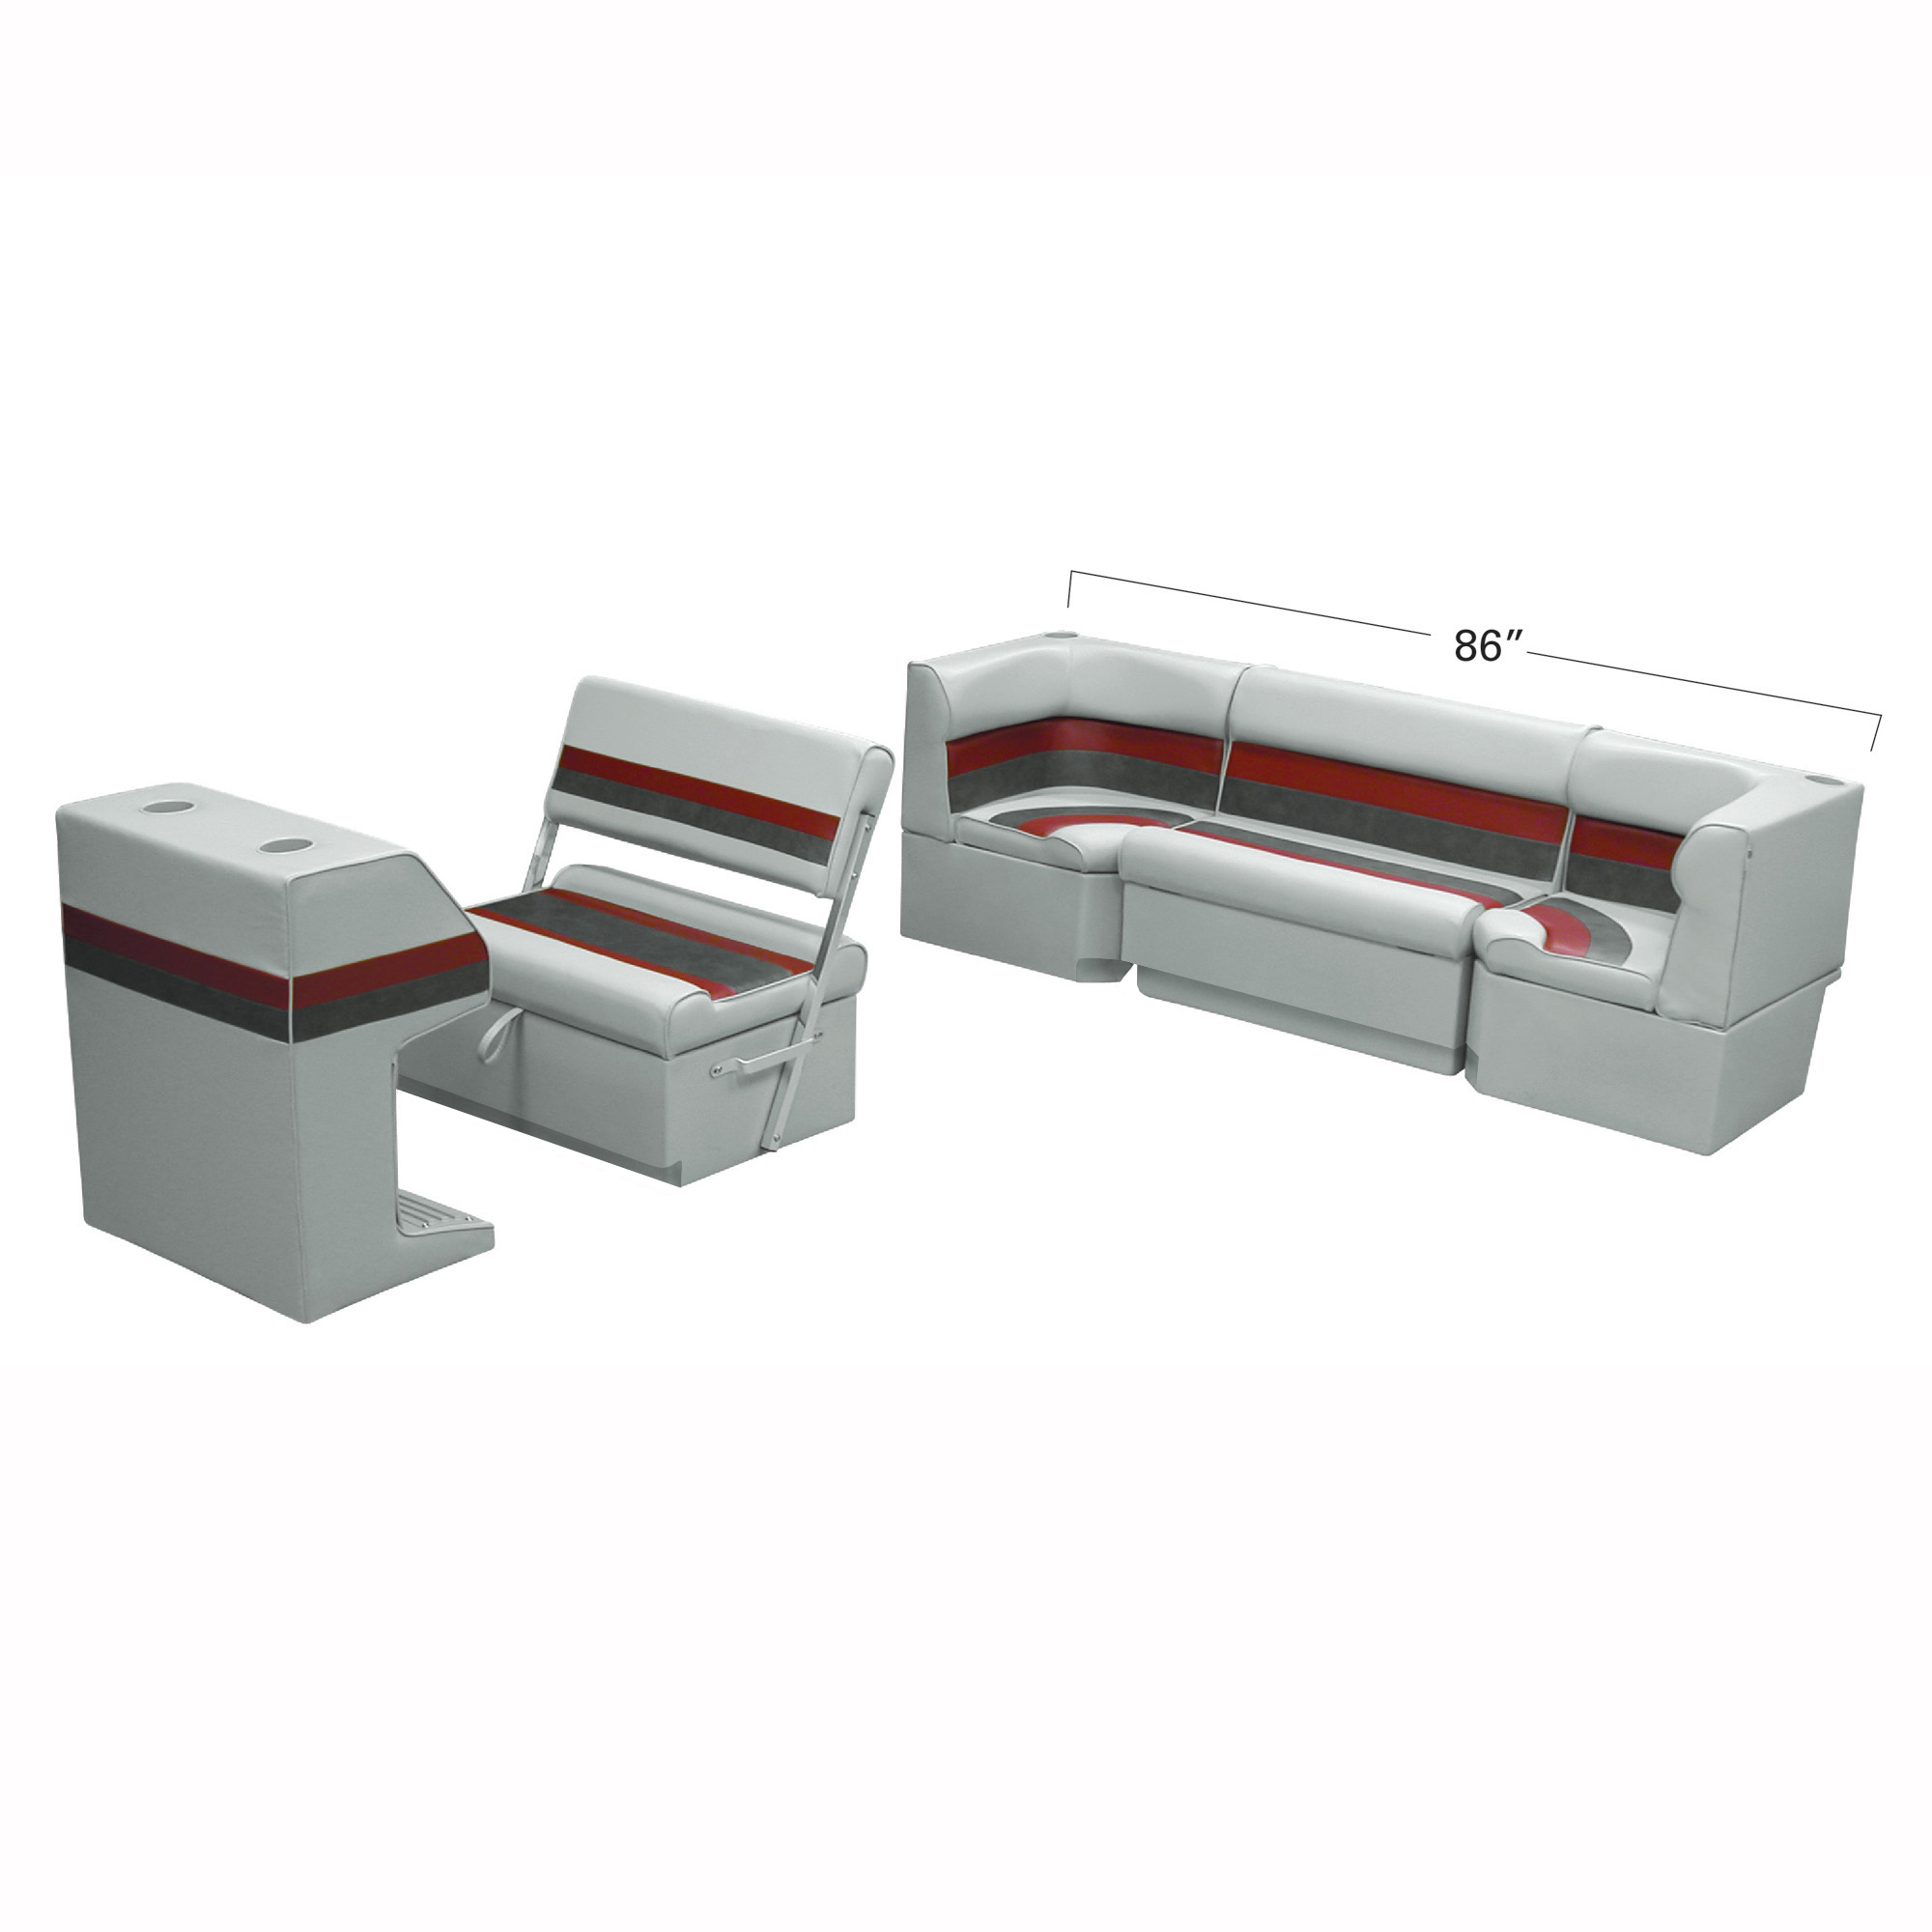 Deluxe Pontoon Furniture w/Toe Kick Base - Rear Cozy Package, Gray/Red/Charcoal